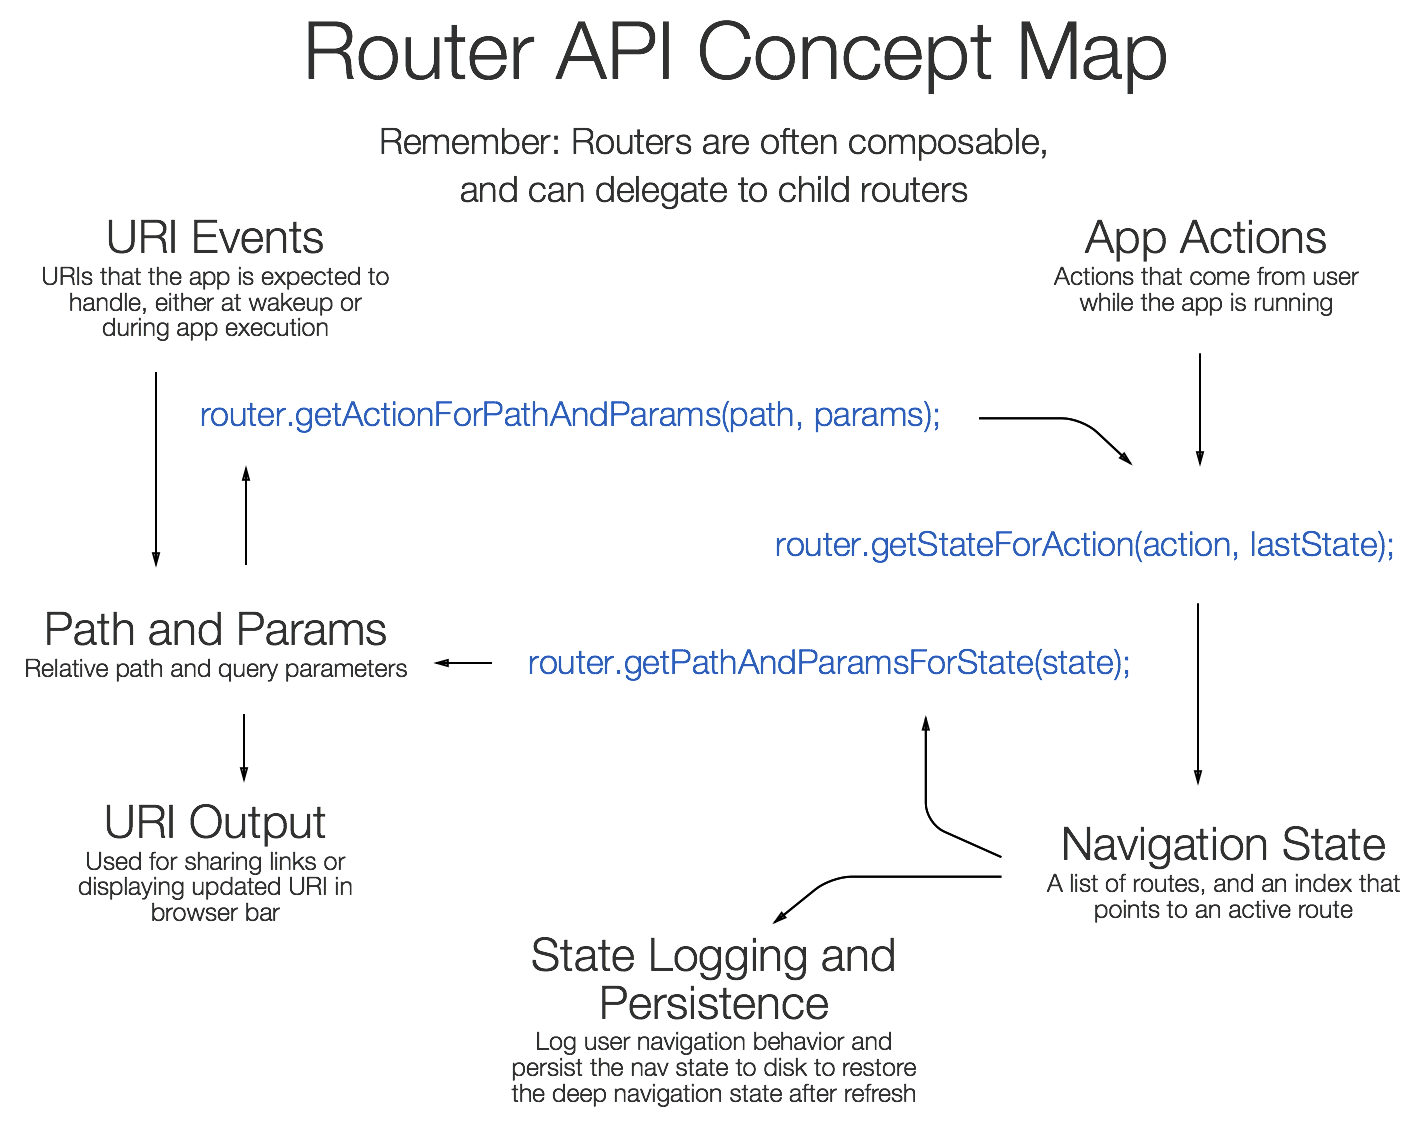 Routers manage the relationship between URIs, actions, and navigation state